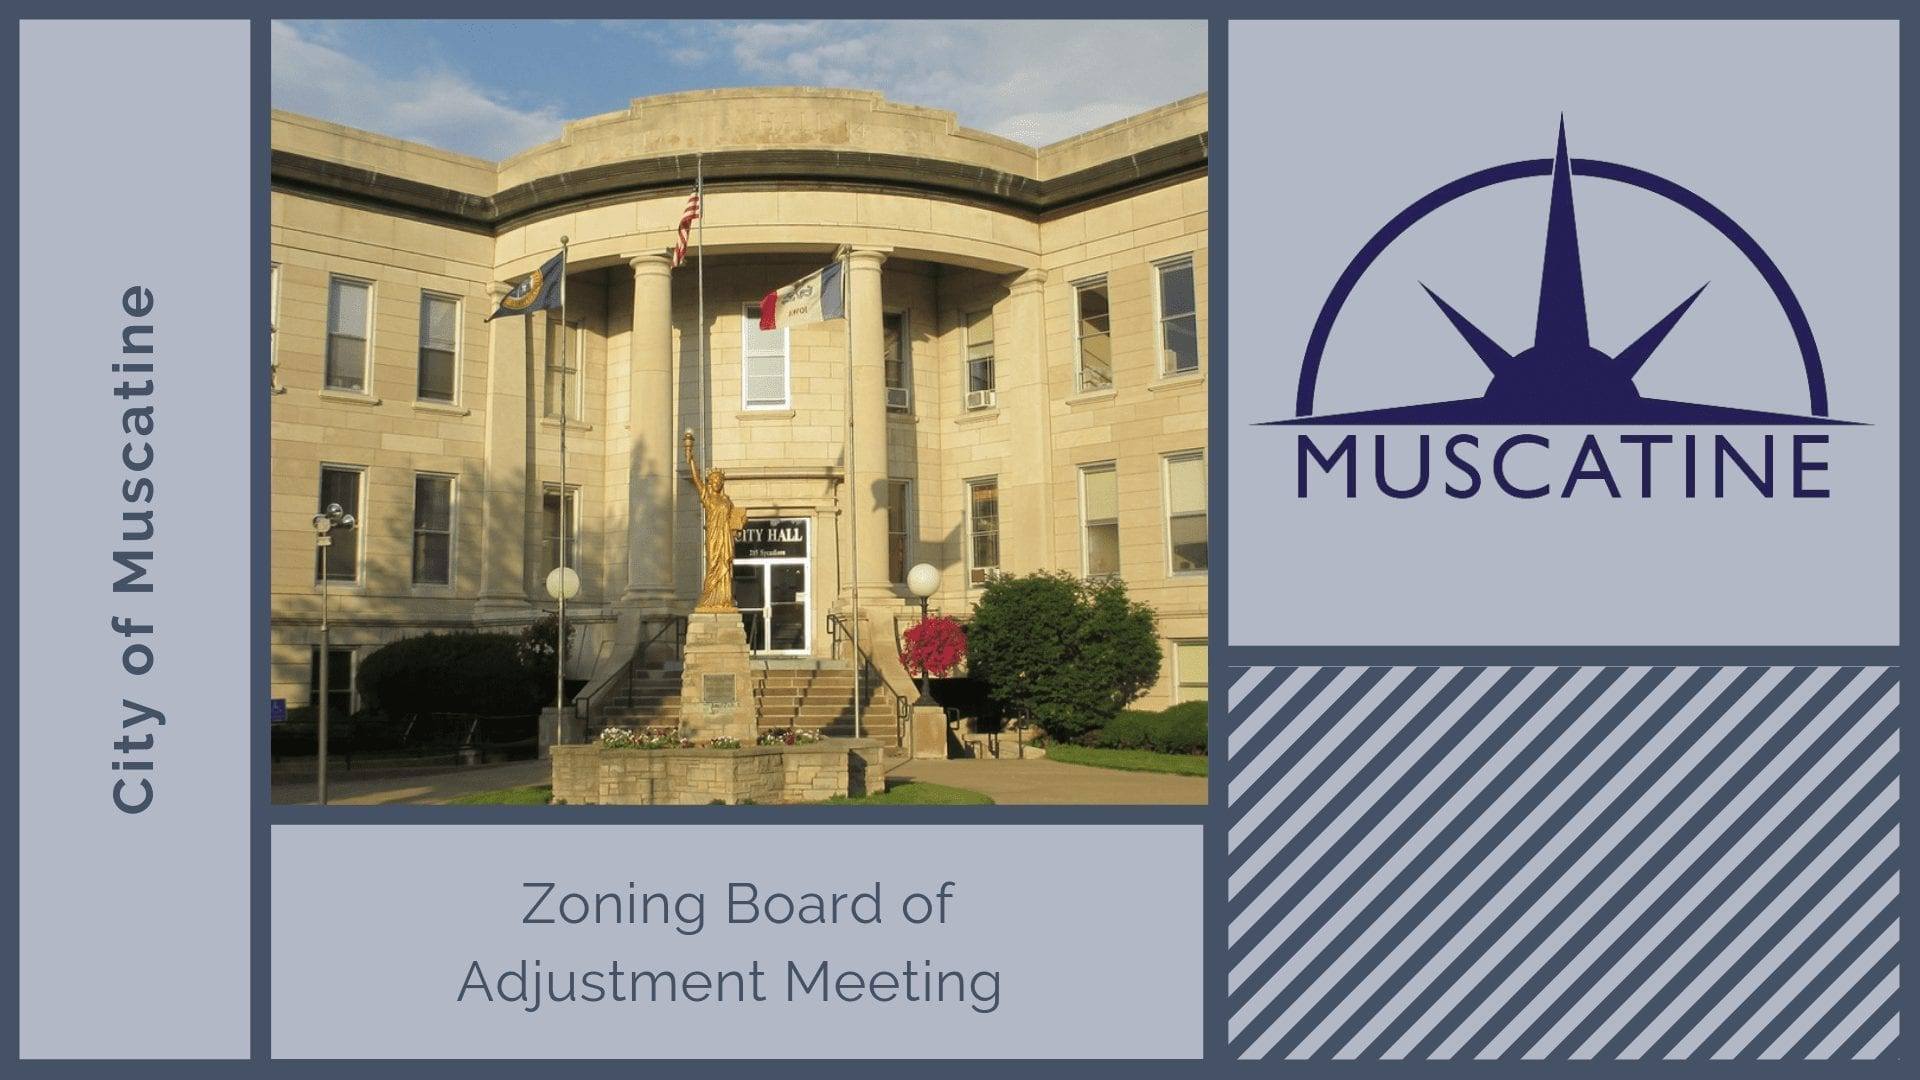 Zoning Board of Adjustment Meeting